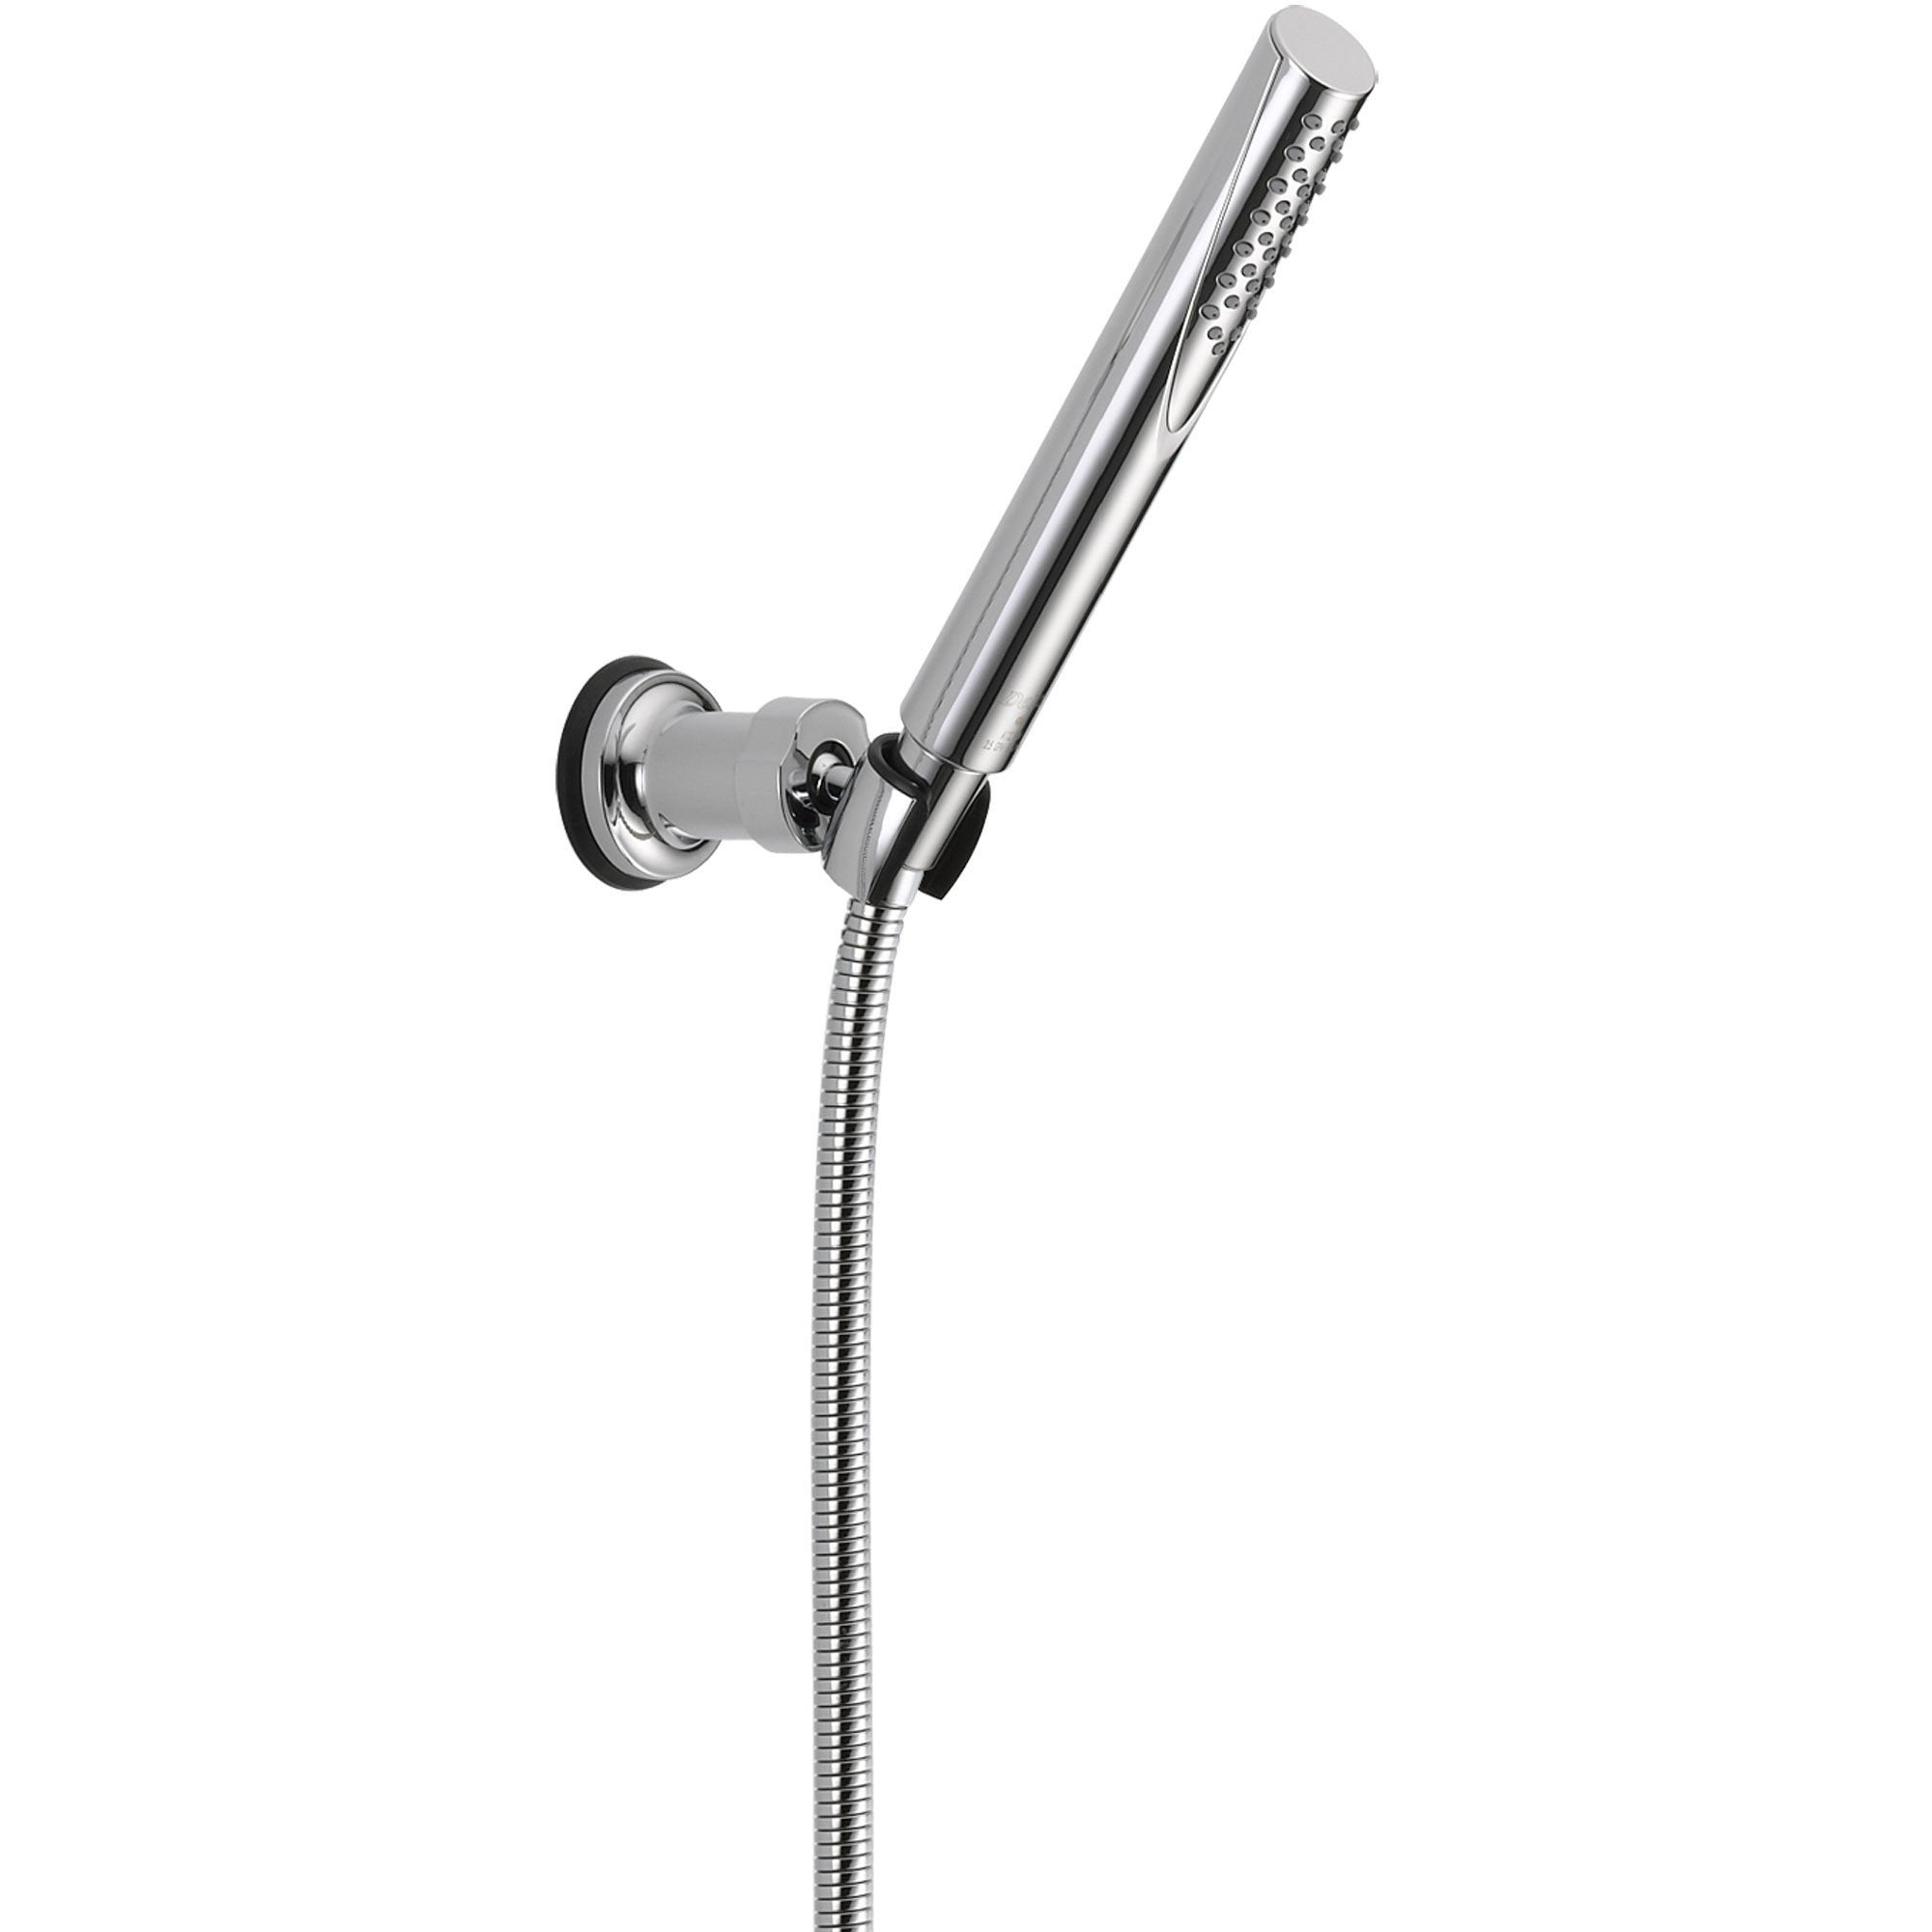 Delta Trinsic Modern Chrome Handheld Shower Head w/ Wall Bracket and Hose 527714